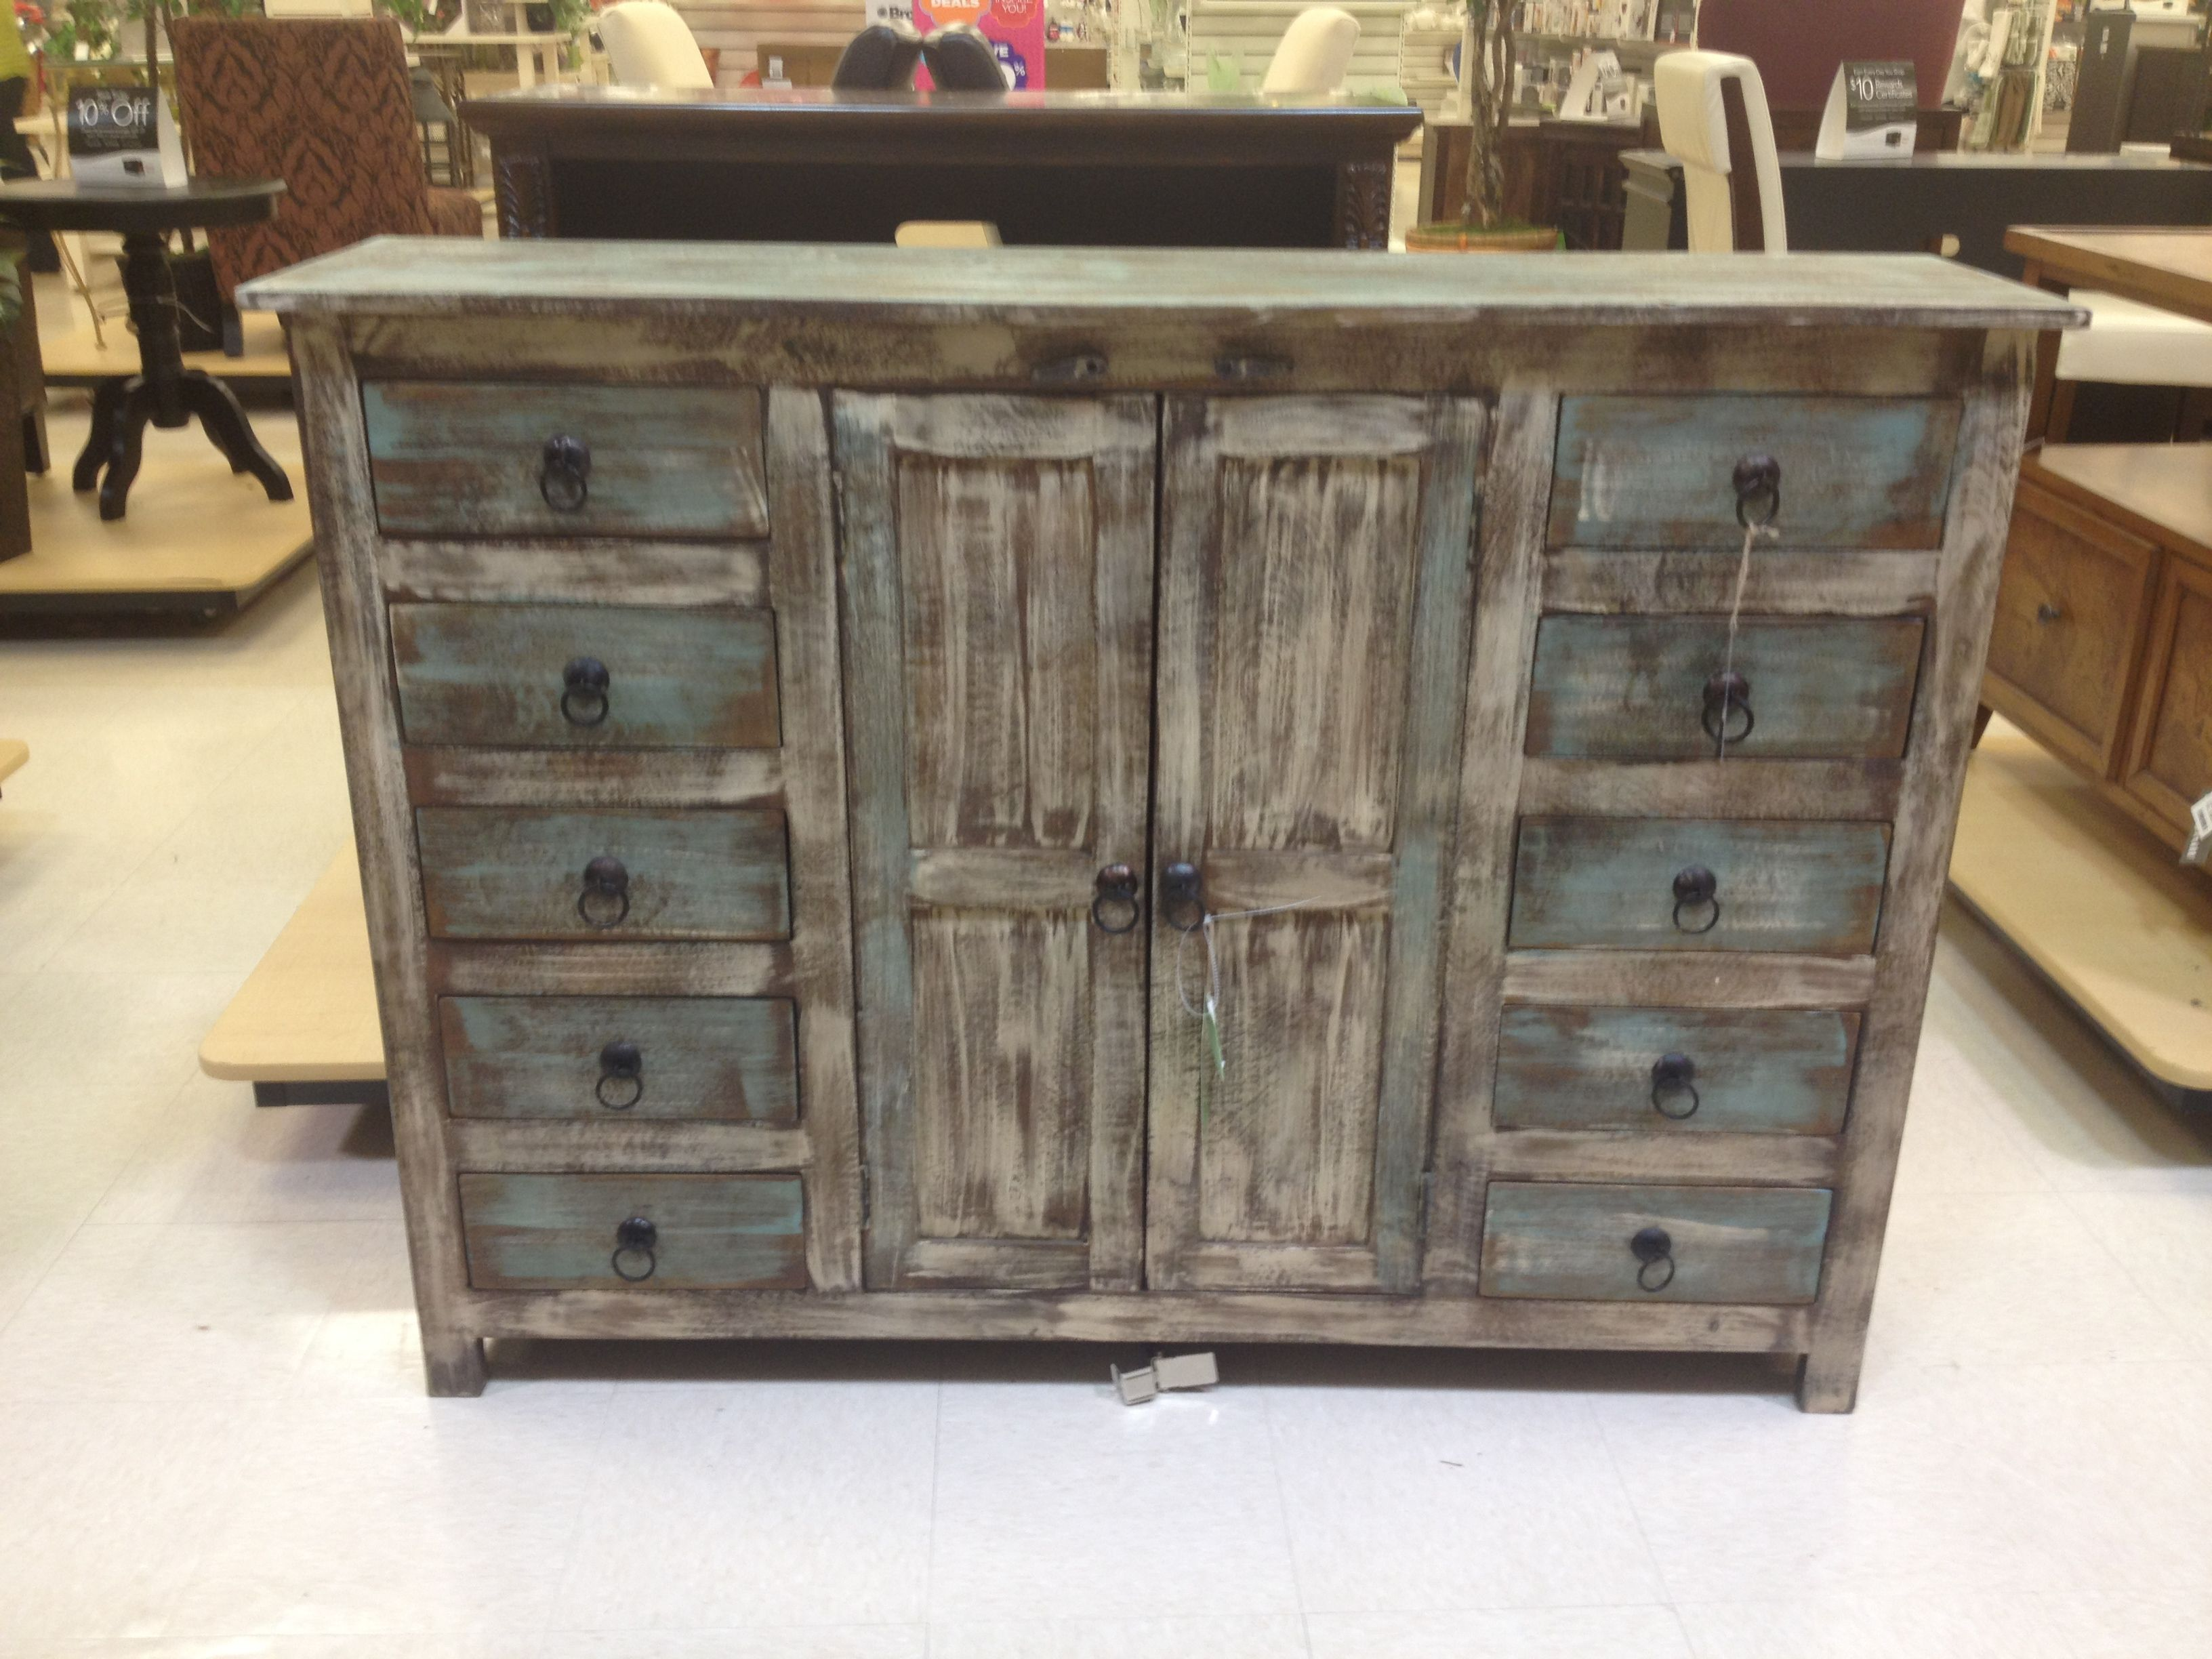 Rustic buffet table furniture - Rustic Weathered Blue Buffet Or Credenza Home Goods 600